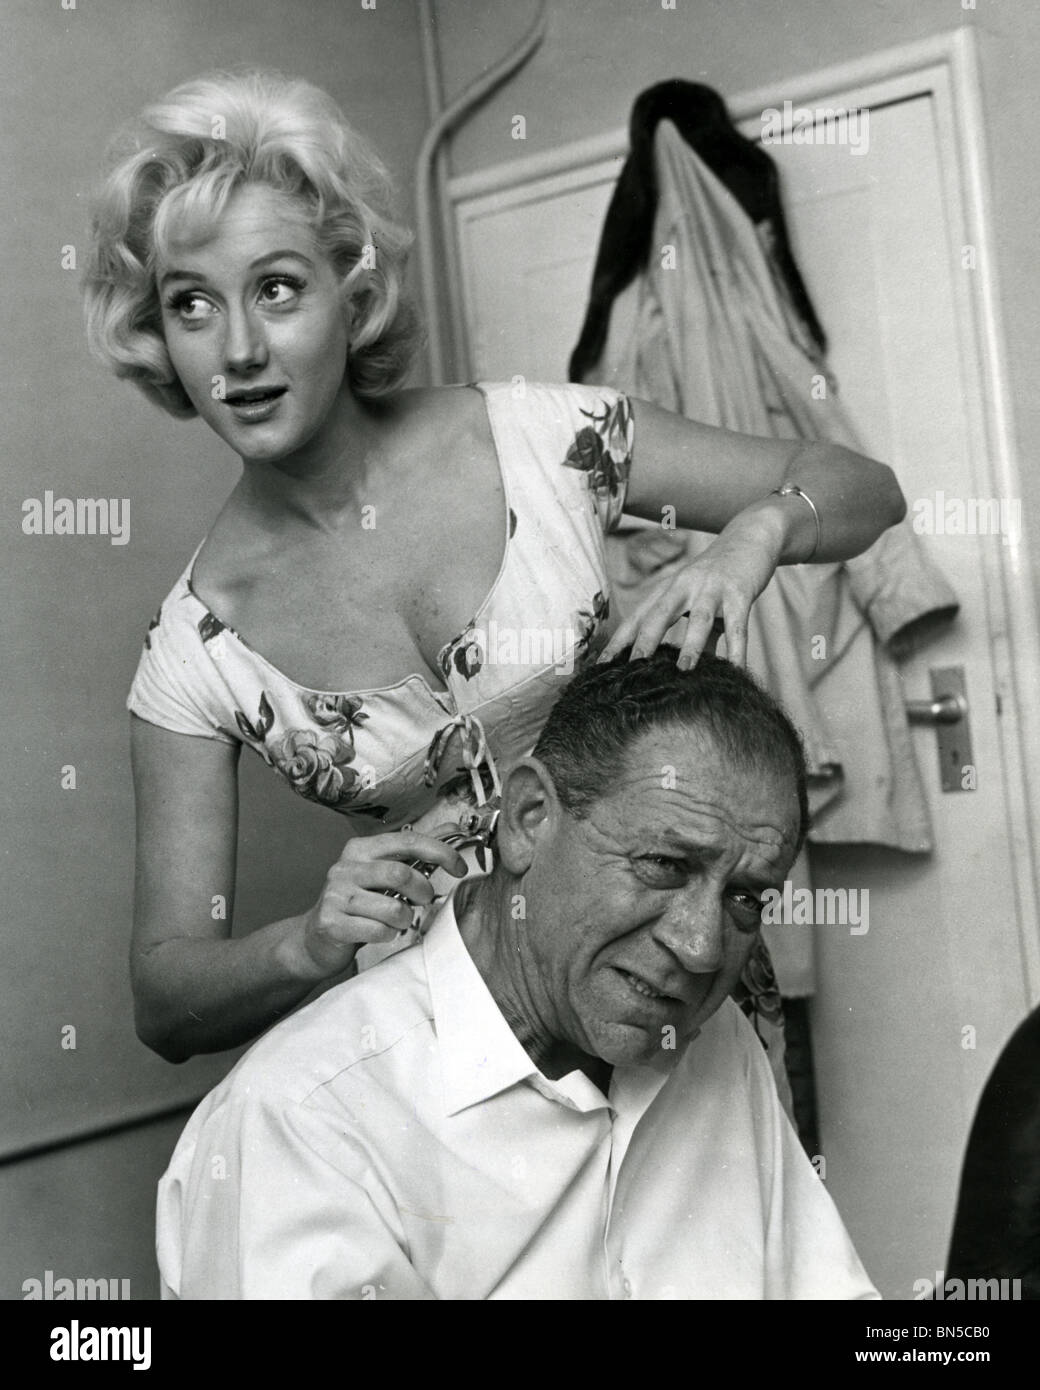 SID JAMES - South African comic actor with Liz Frazer - Stock Image